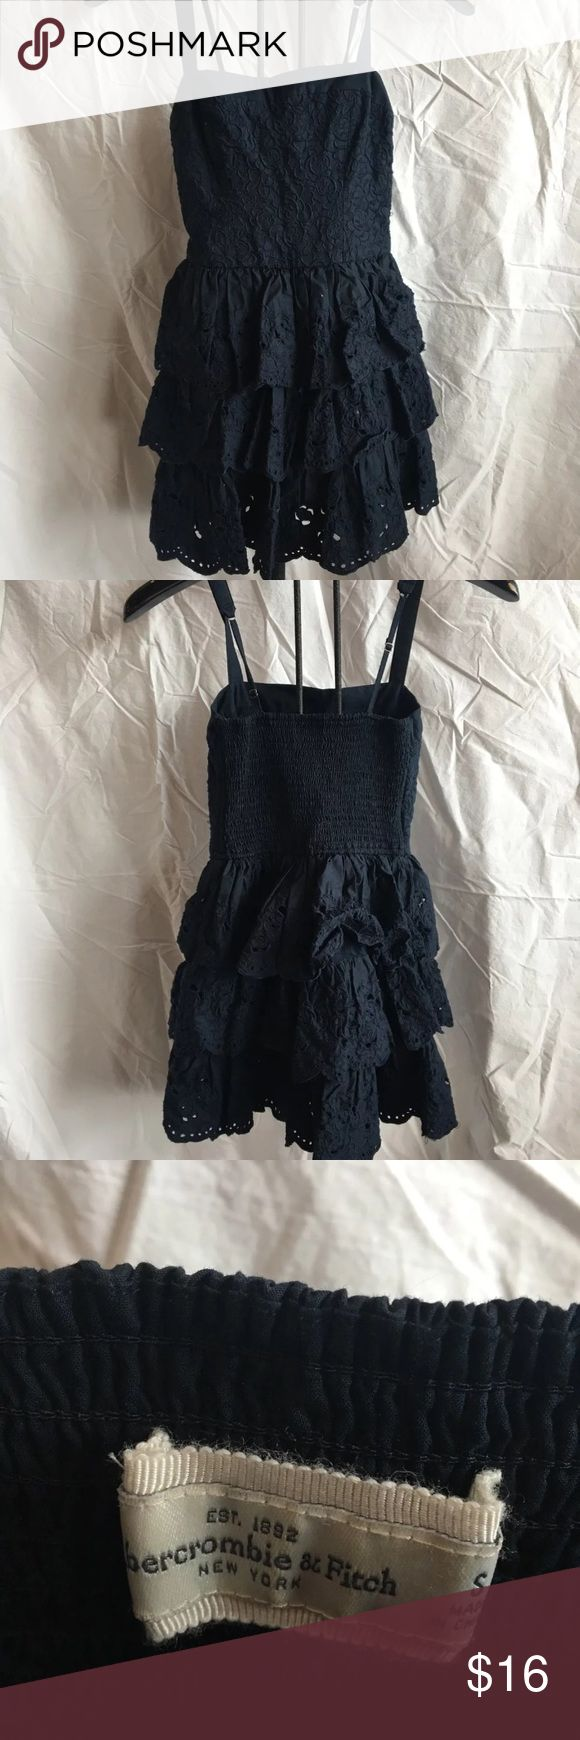 Navy Blue Abercrombie and Fitch Dress Navy blue Abercrombie and Fitch Dress with fitted top and tiered, eyelit lace skirt. Abercrombie & Fitch Dresses Midi